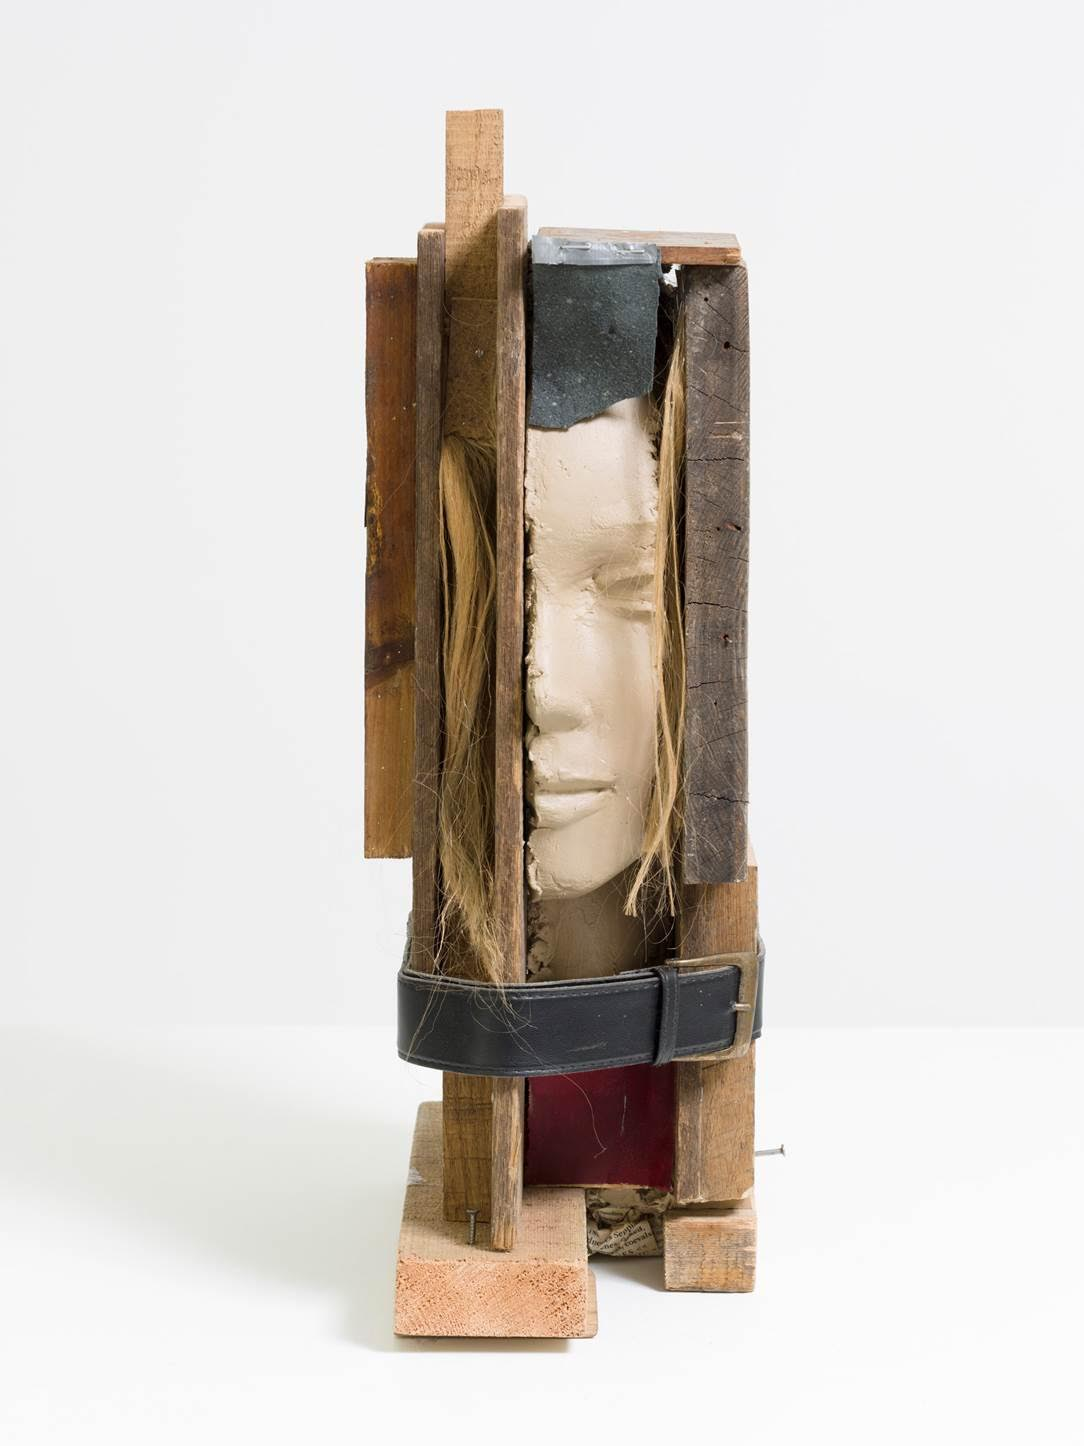 Girl Study, 2013. Wood, painted epoxy, painted wig, offset print on paper and belt. Courtesy of the artist and Tanya Bonakdar Gallery, New York.